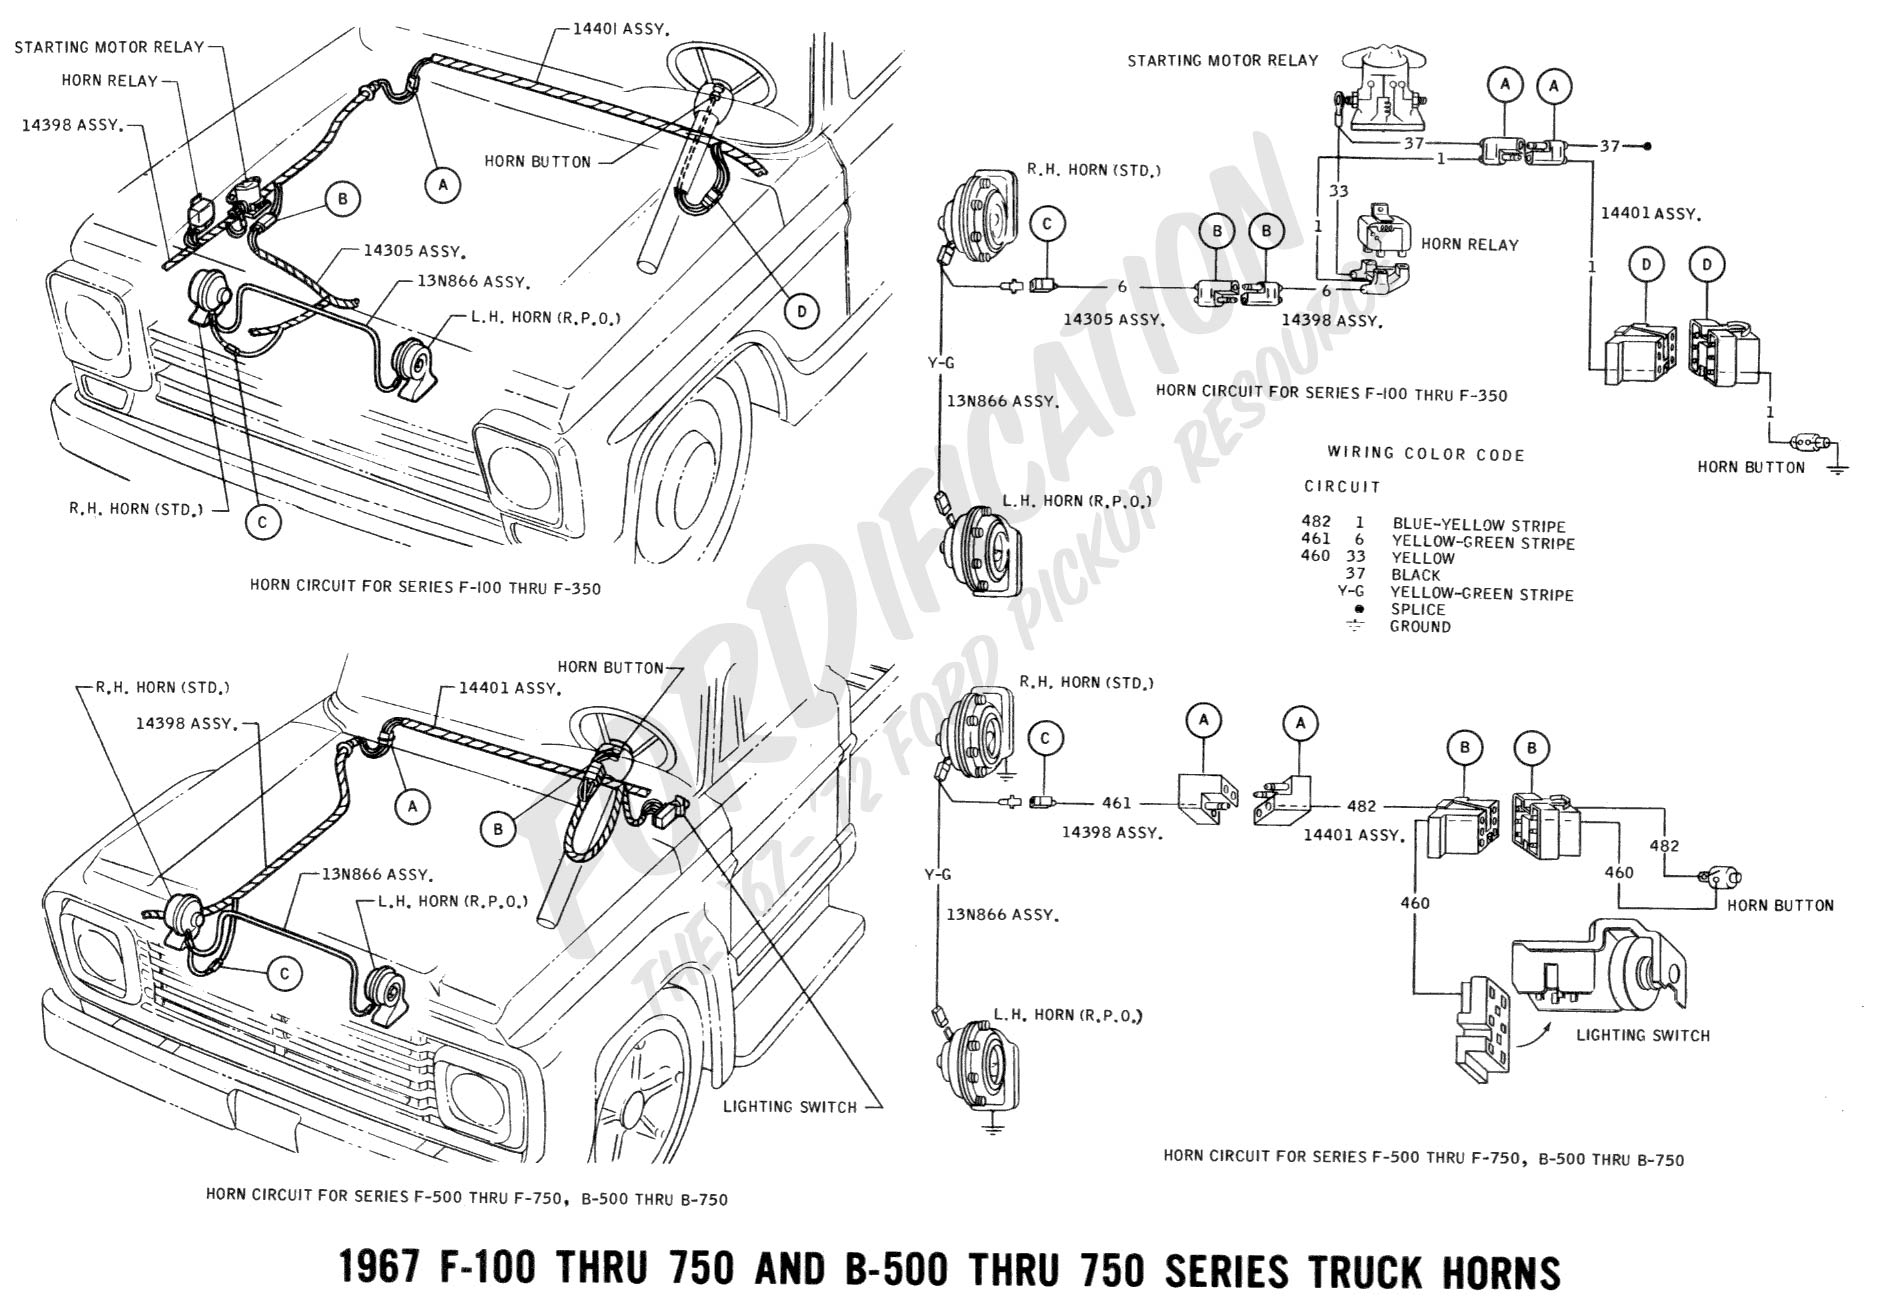 1957 ford fairlane 500 ignition diagram ford truck technical drawings and schematics section h